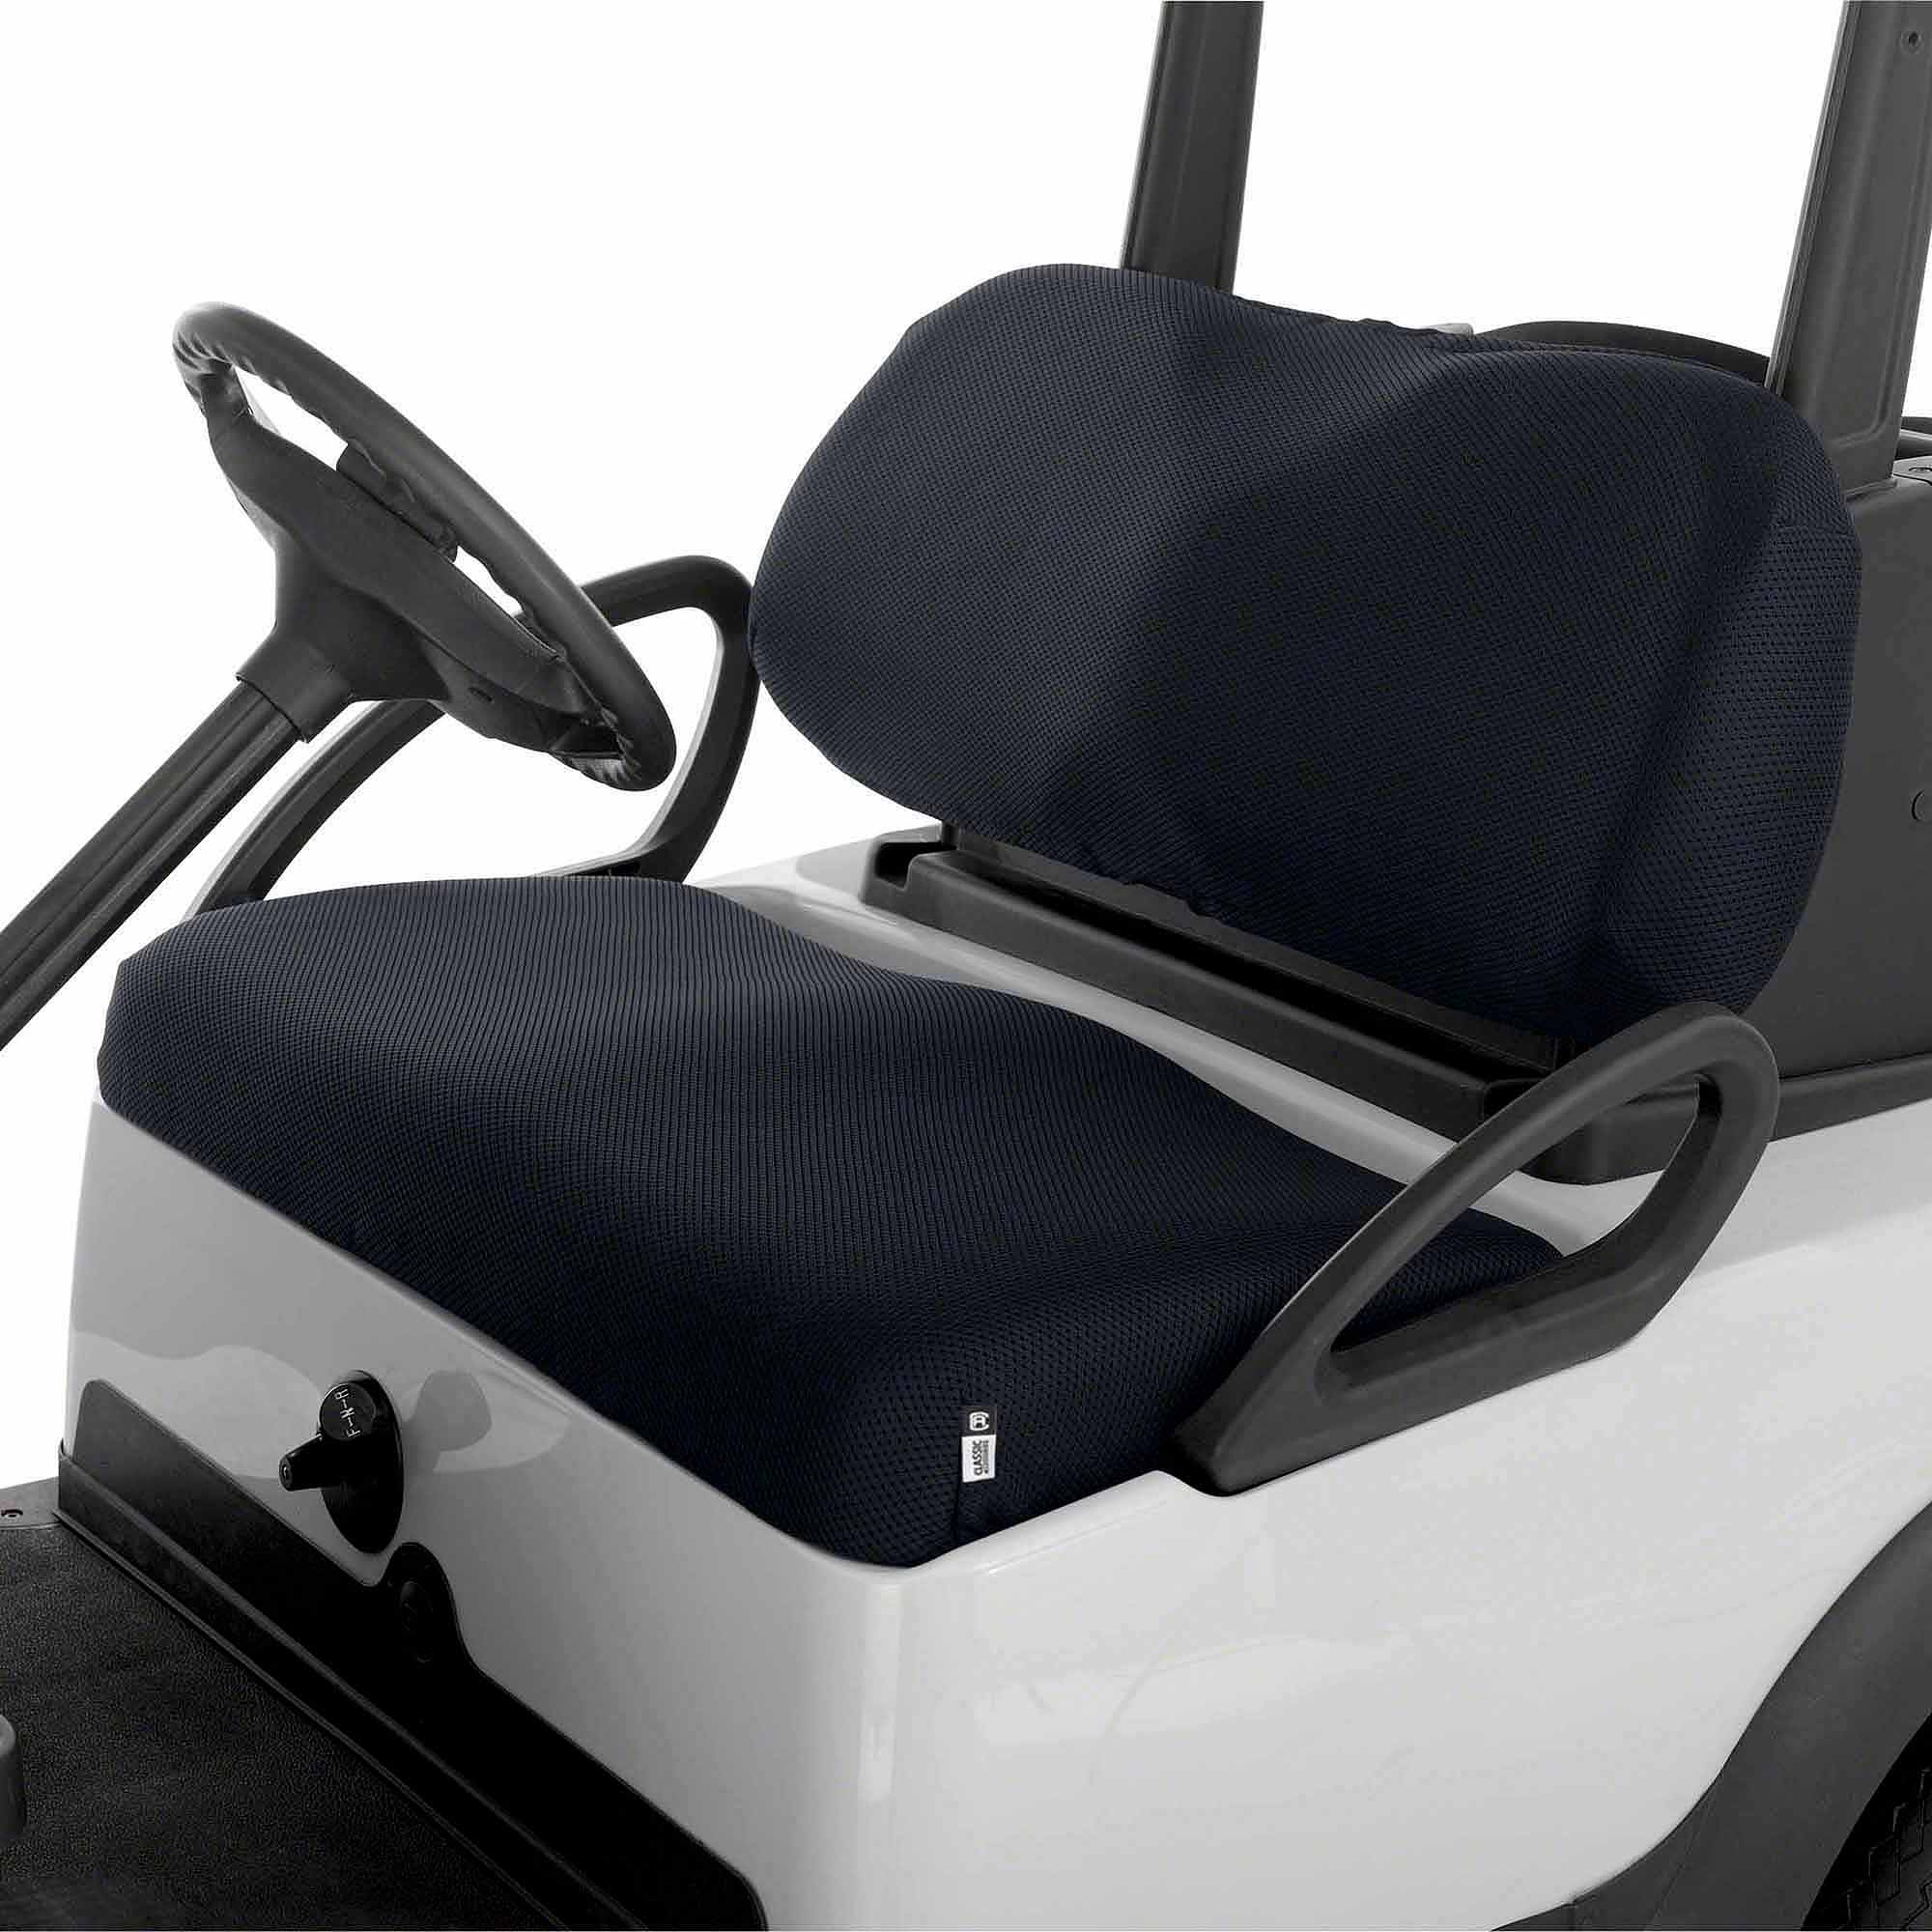 Classic Accessories Fairway Golf Cart Seat Cover, Diamond Air Mesh by Classic Accessories